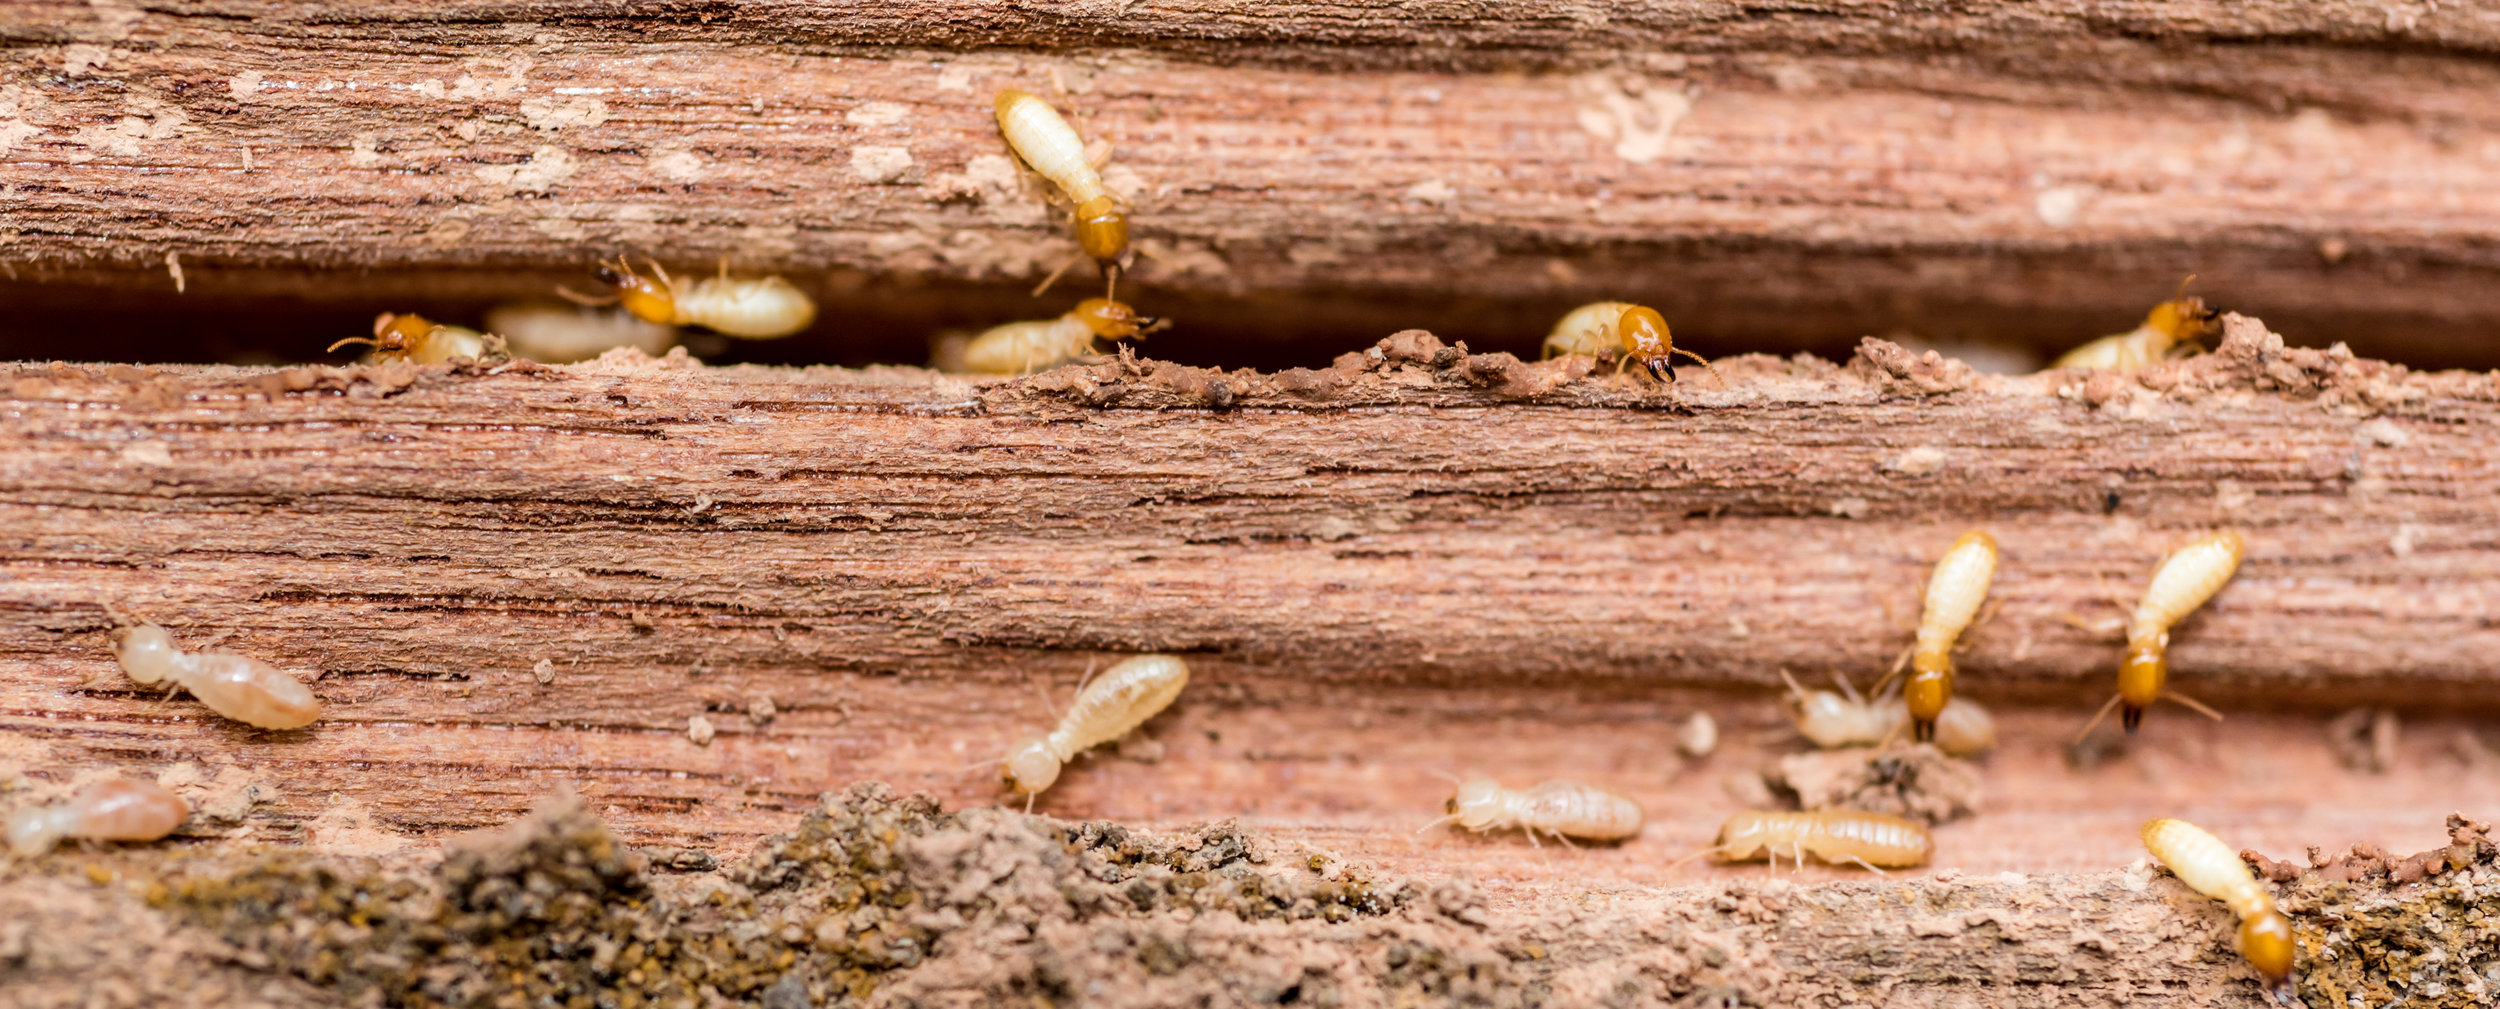 Get Rid of Termites in Your NYC Rental Property with Professional Termite Extermination Service